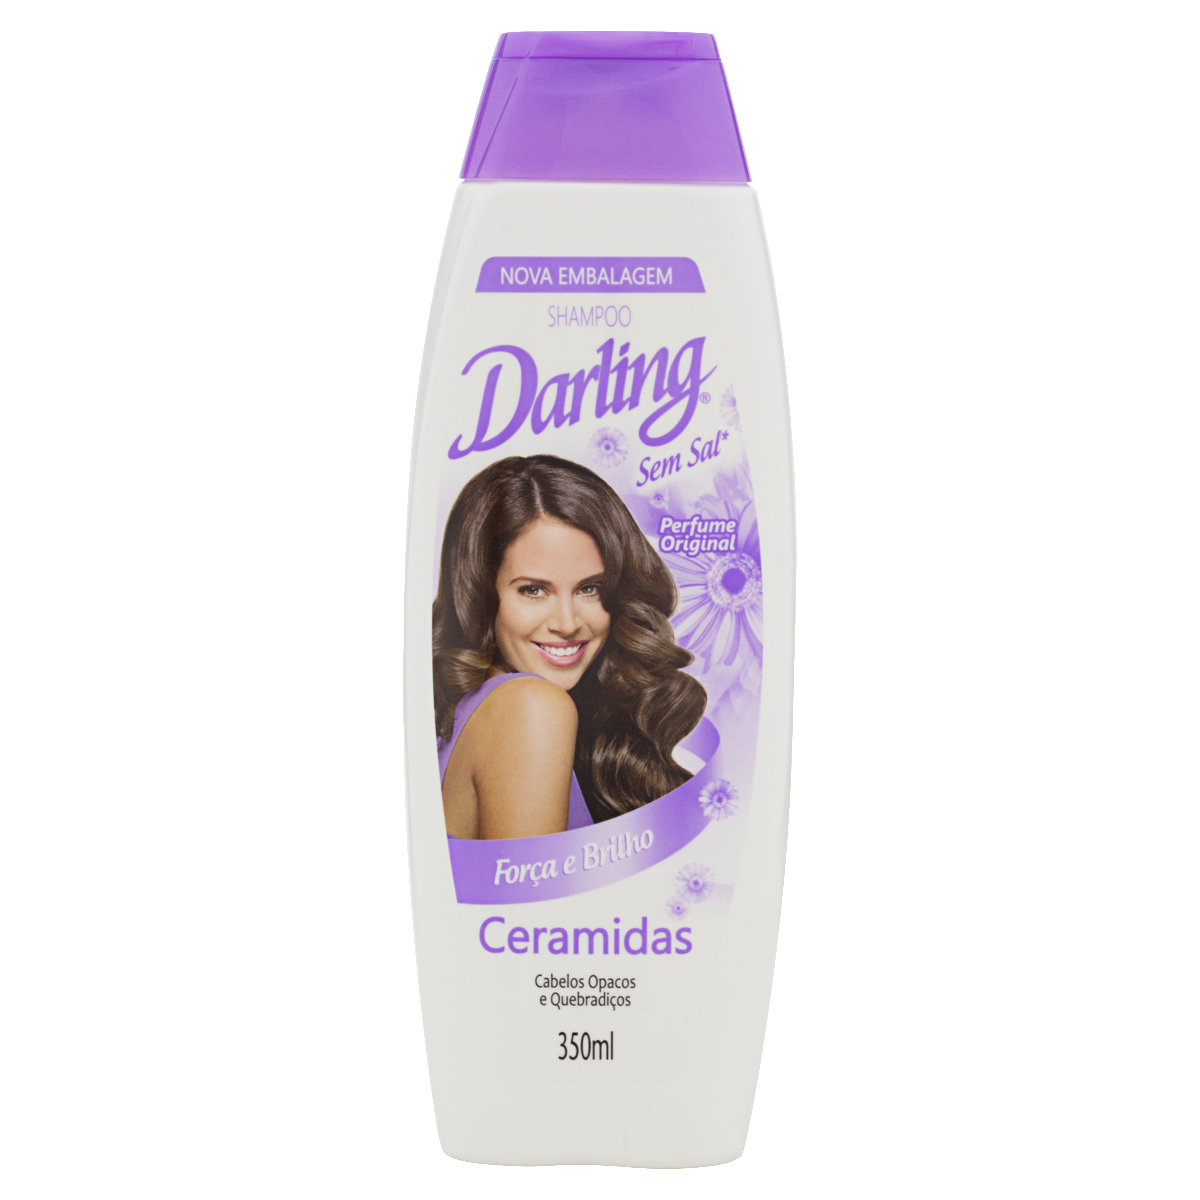 7891024181072 - SHAMPOO ORIGINAL DARLING CERAMIDAS FRASCO 350ML